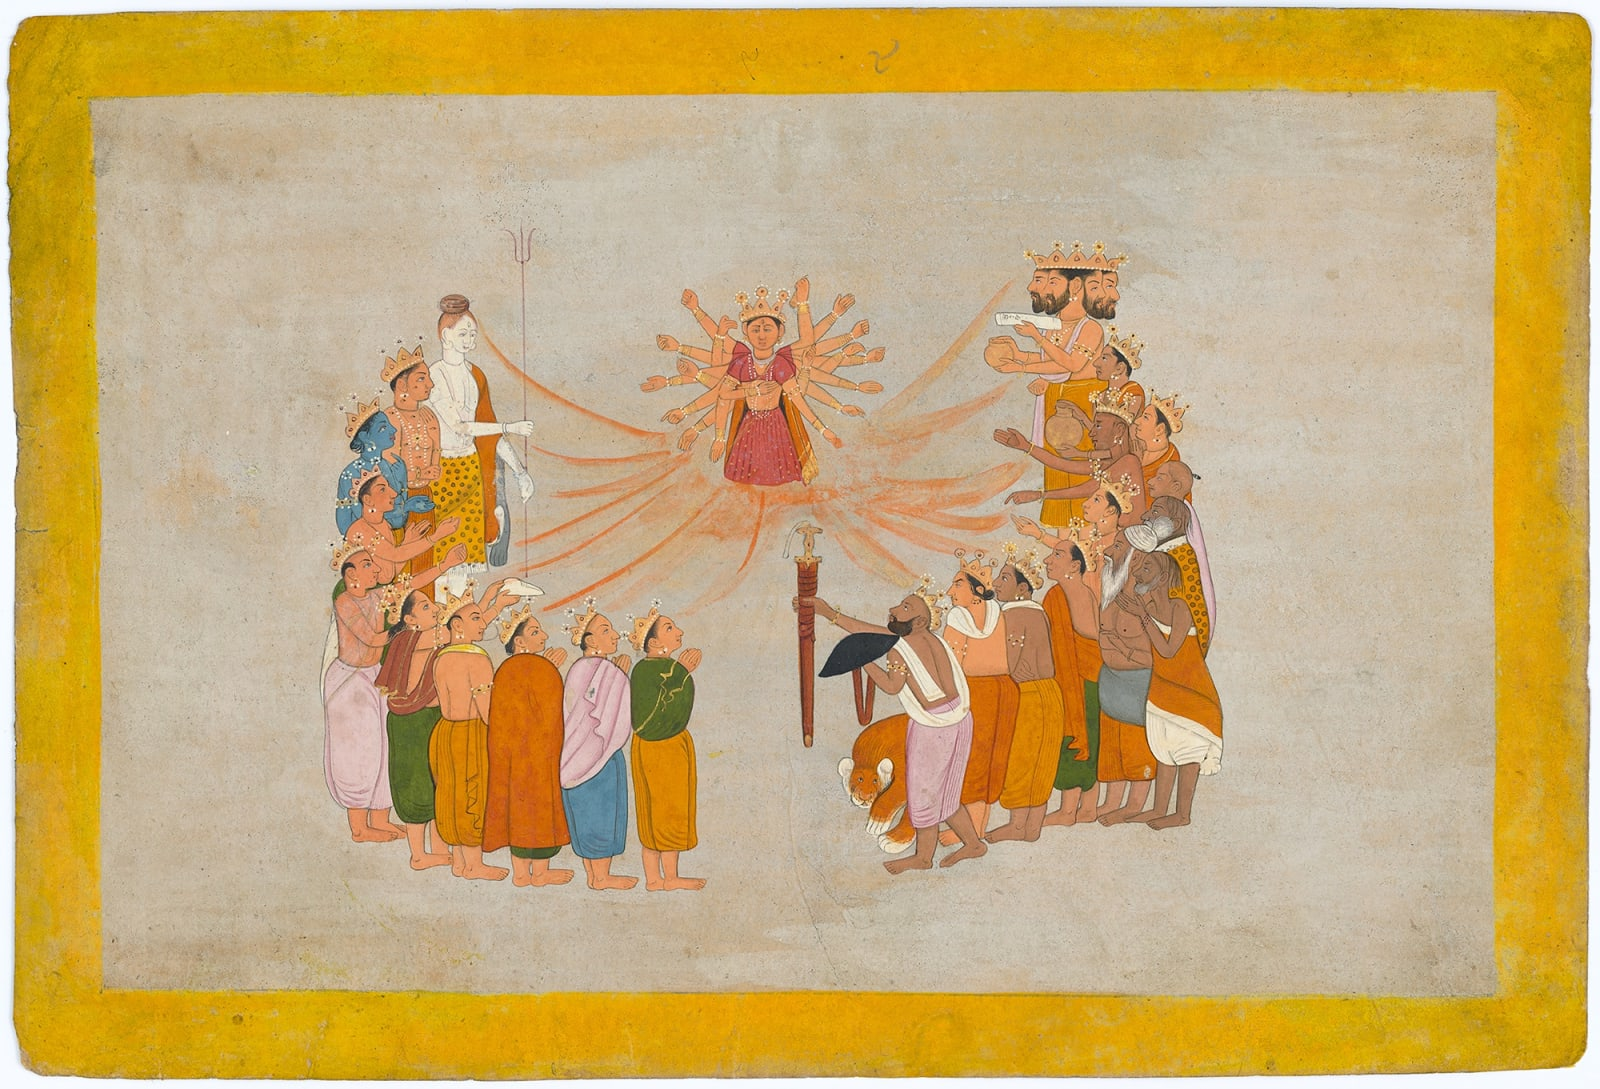 The Goddess emanates from the Essence of all the Gods - Page from a Devi Mahatmya Series, By a Guler artist, 1775-80